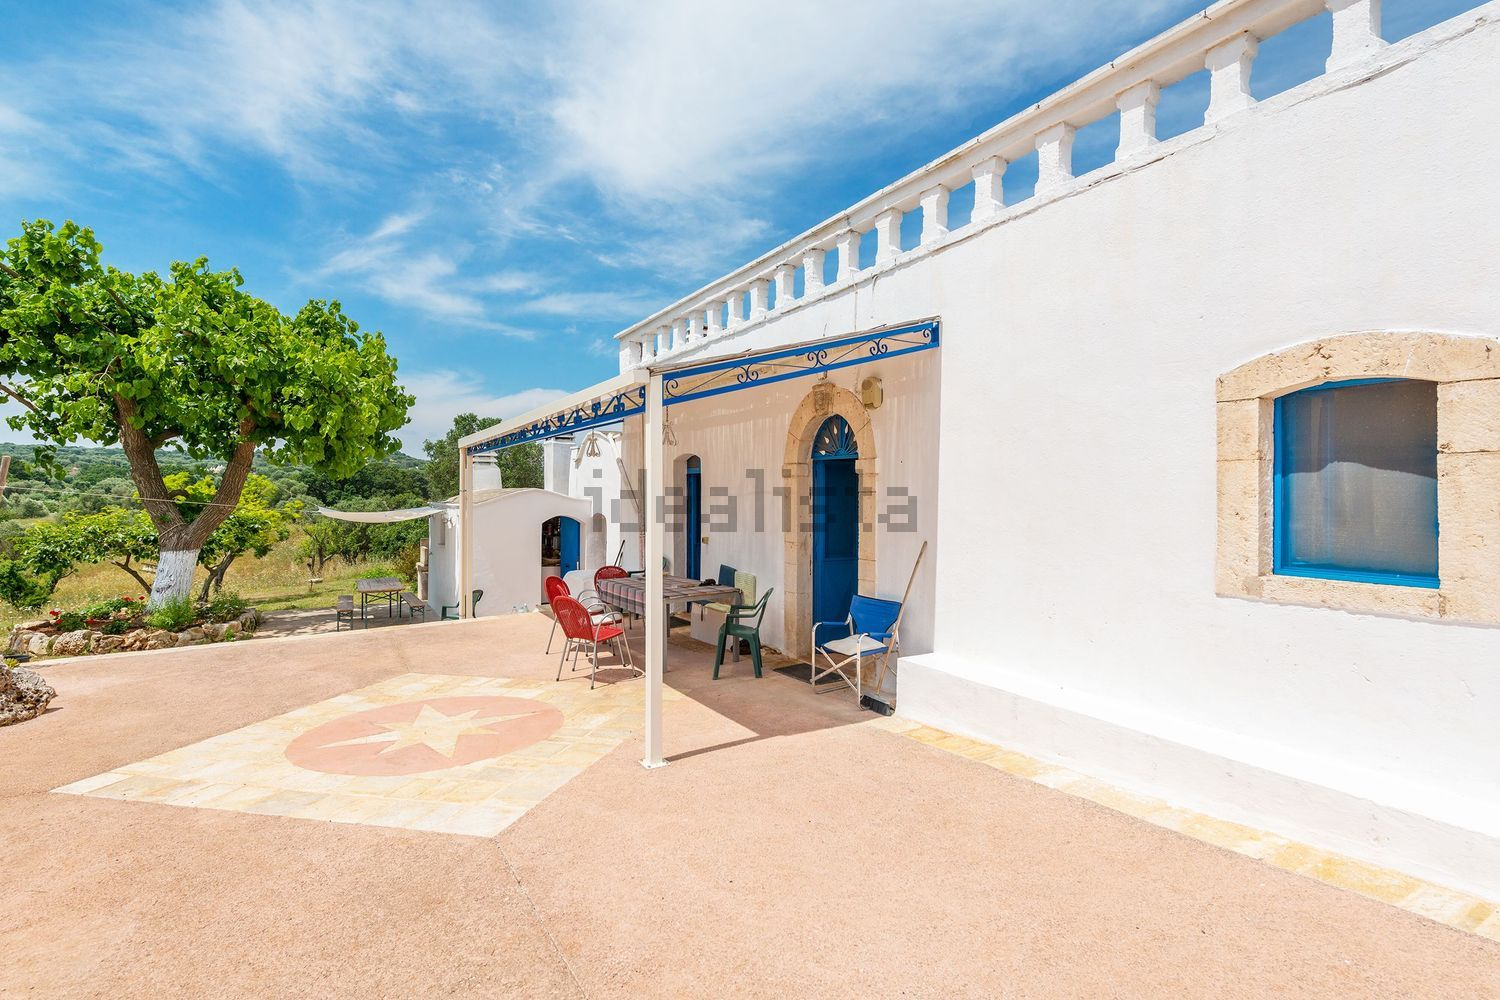 Old Farmhouse located on Sp Ostuni – Martina Franca